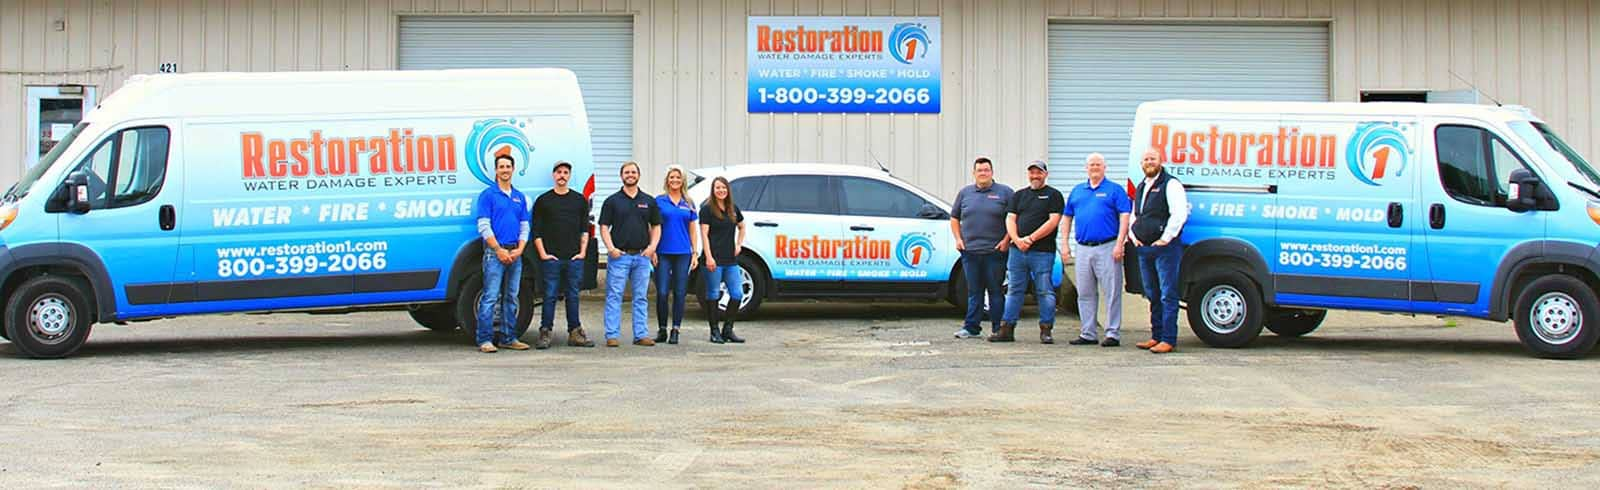 Image 3 27 2 - Restoration 1 - Your Local Team